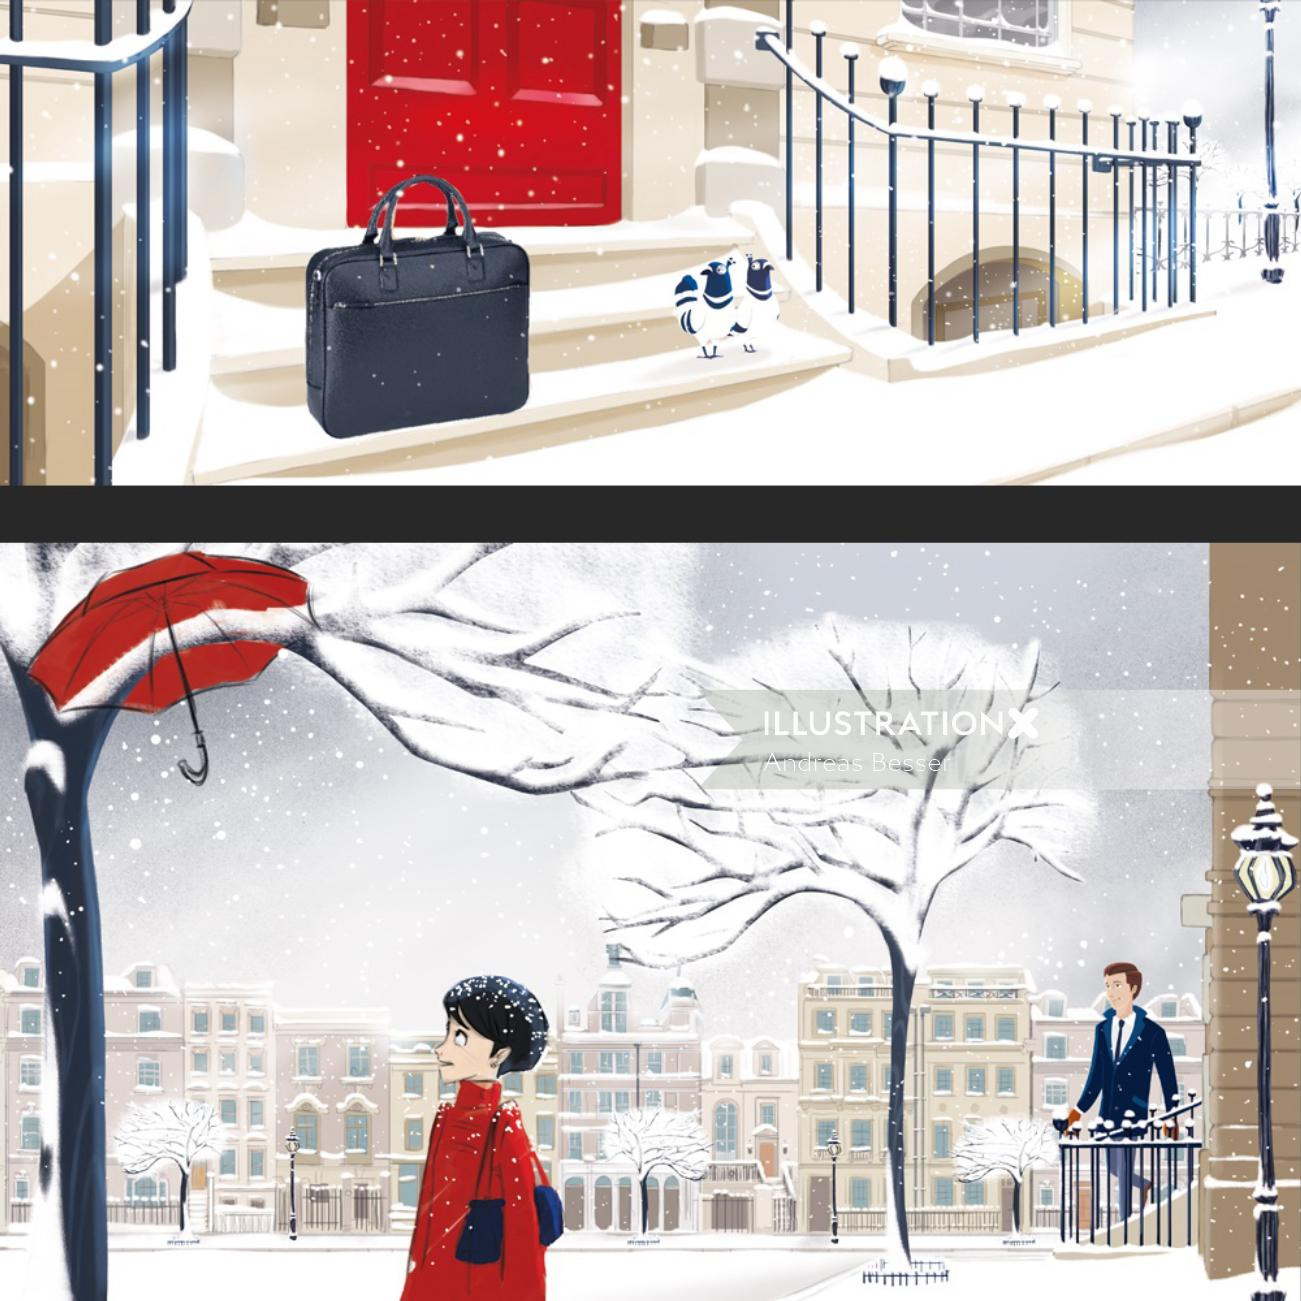 character illustration of people in snow